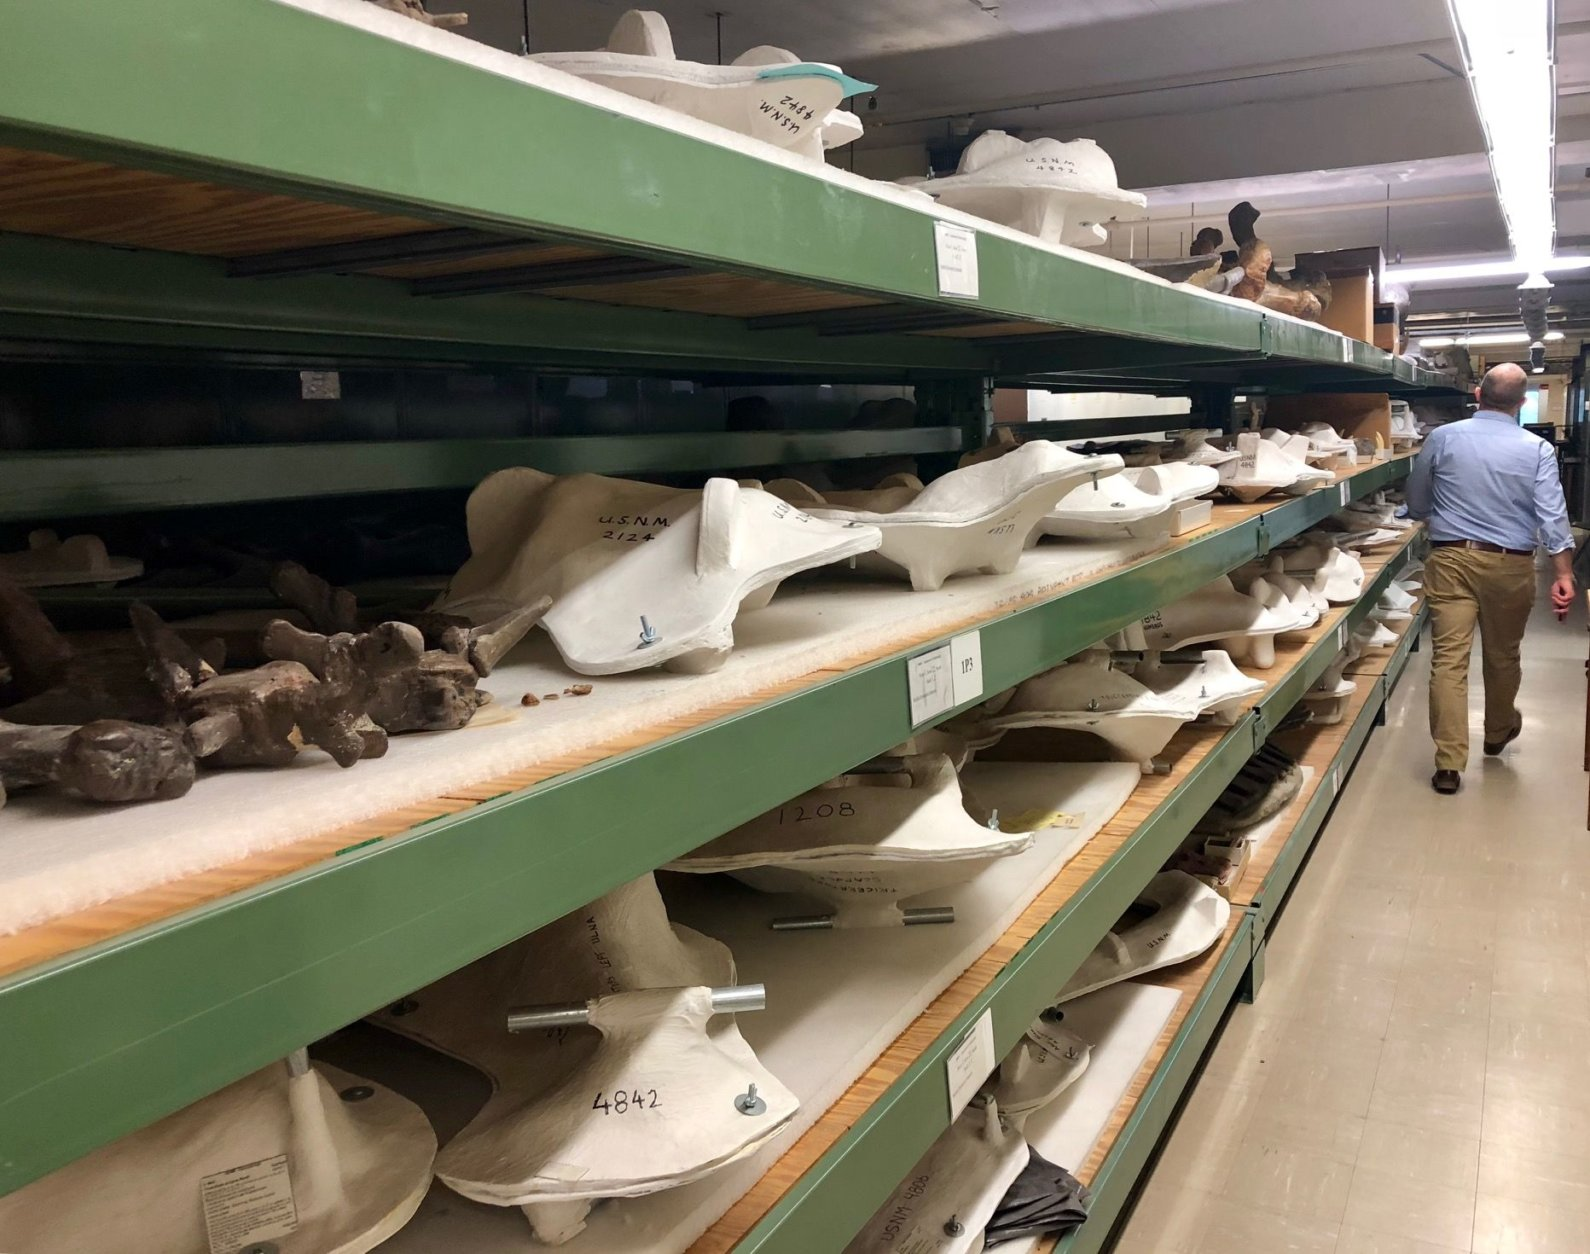 With the deadline of the fossil hall's opening next June looming large, the crunch is on to tell the story of more than 700 rare specimens. (WTOP/Megan Cloherty)